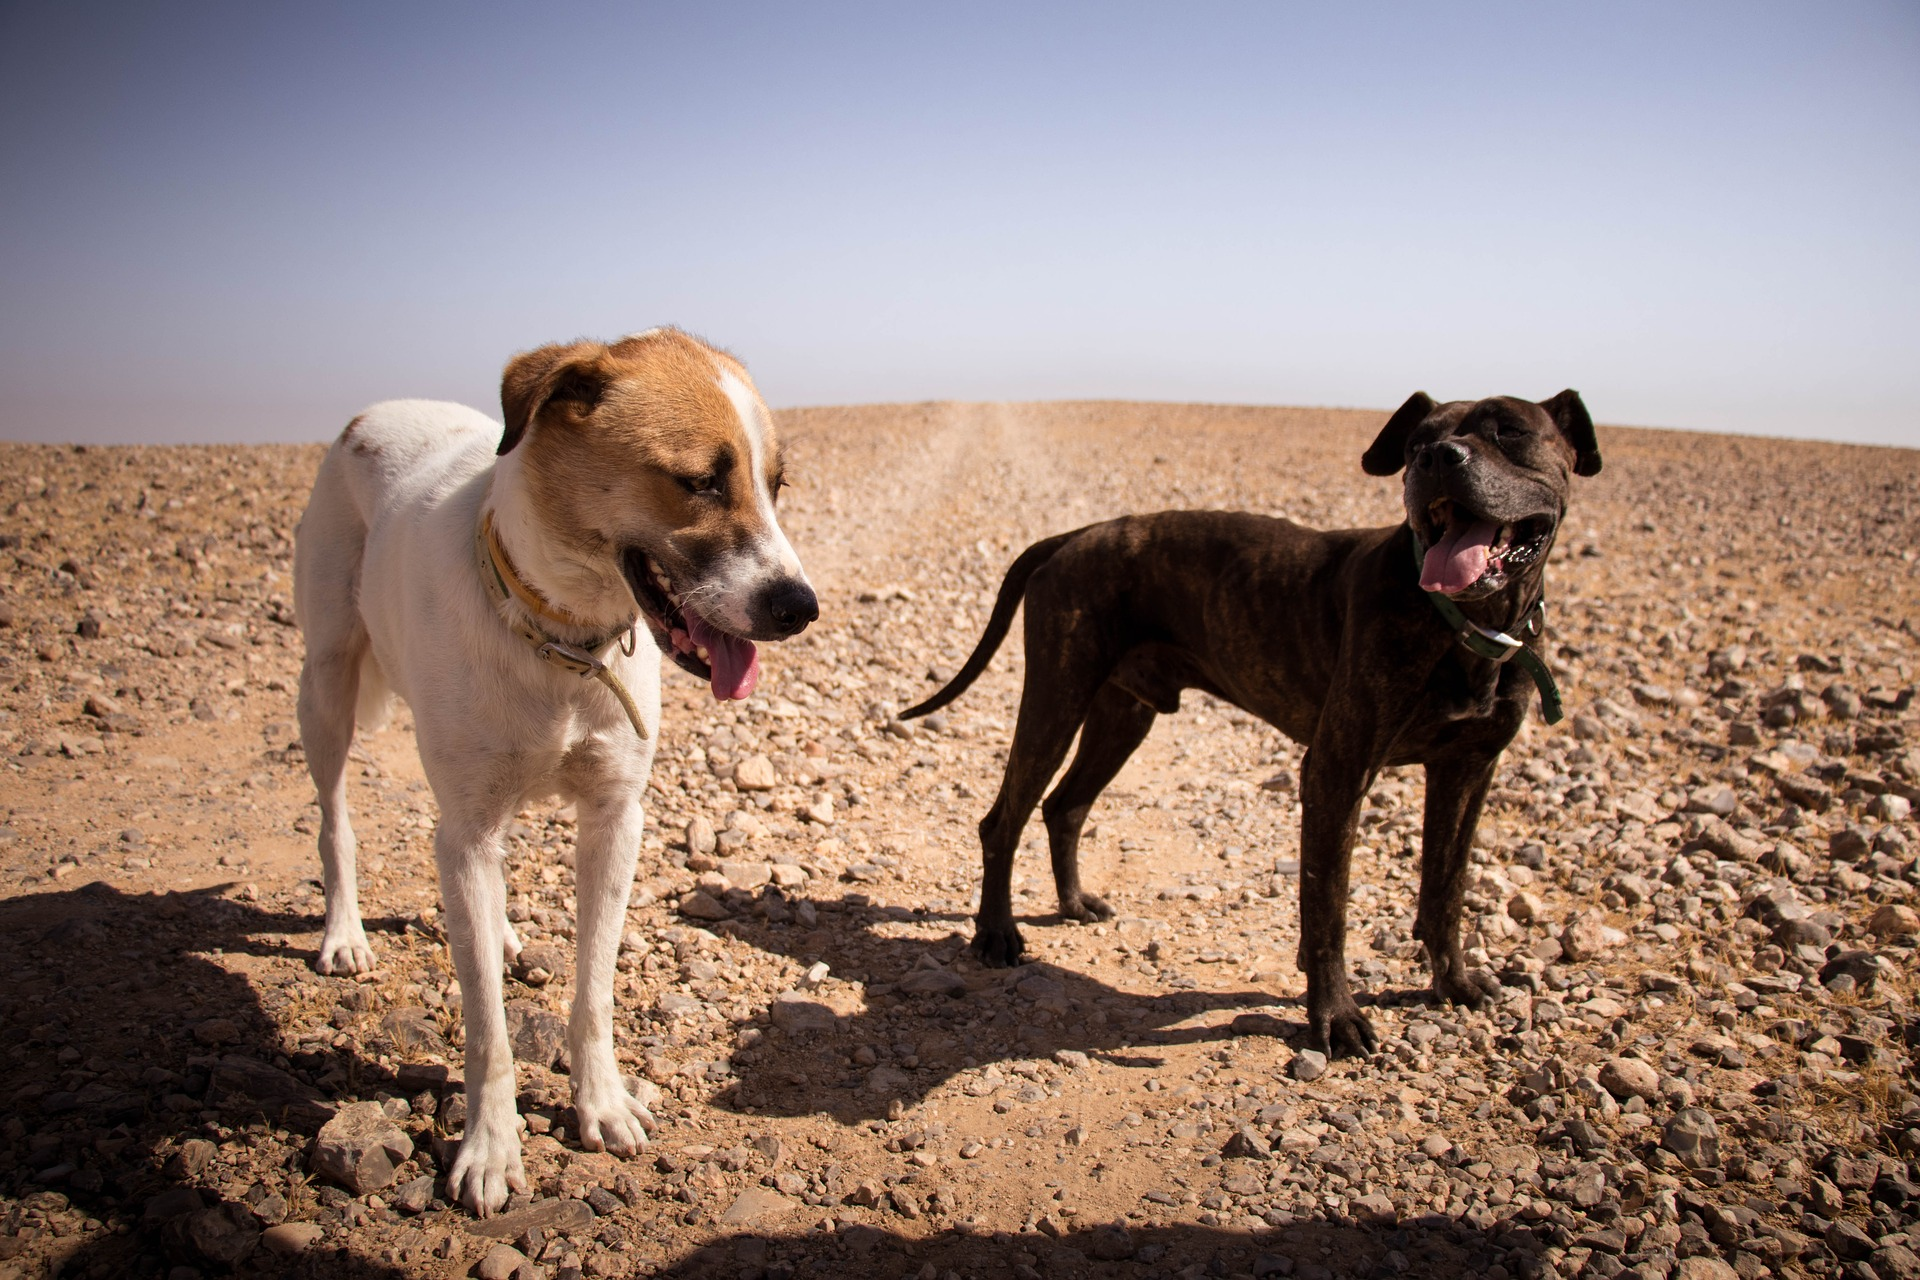 Two dogs panting in desert